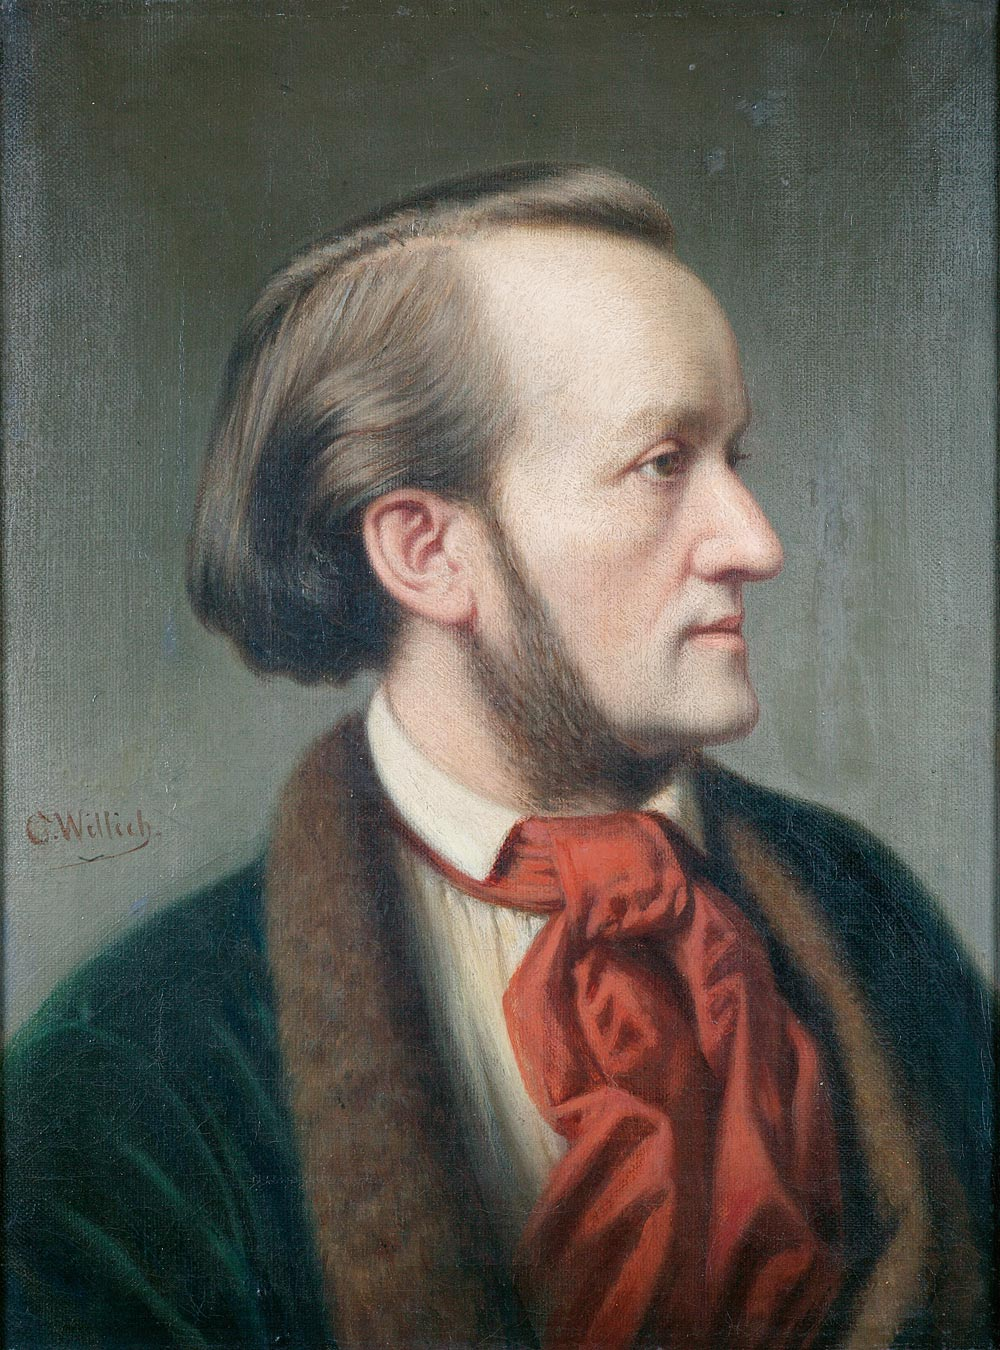 richard wagner par willich by